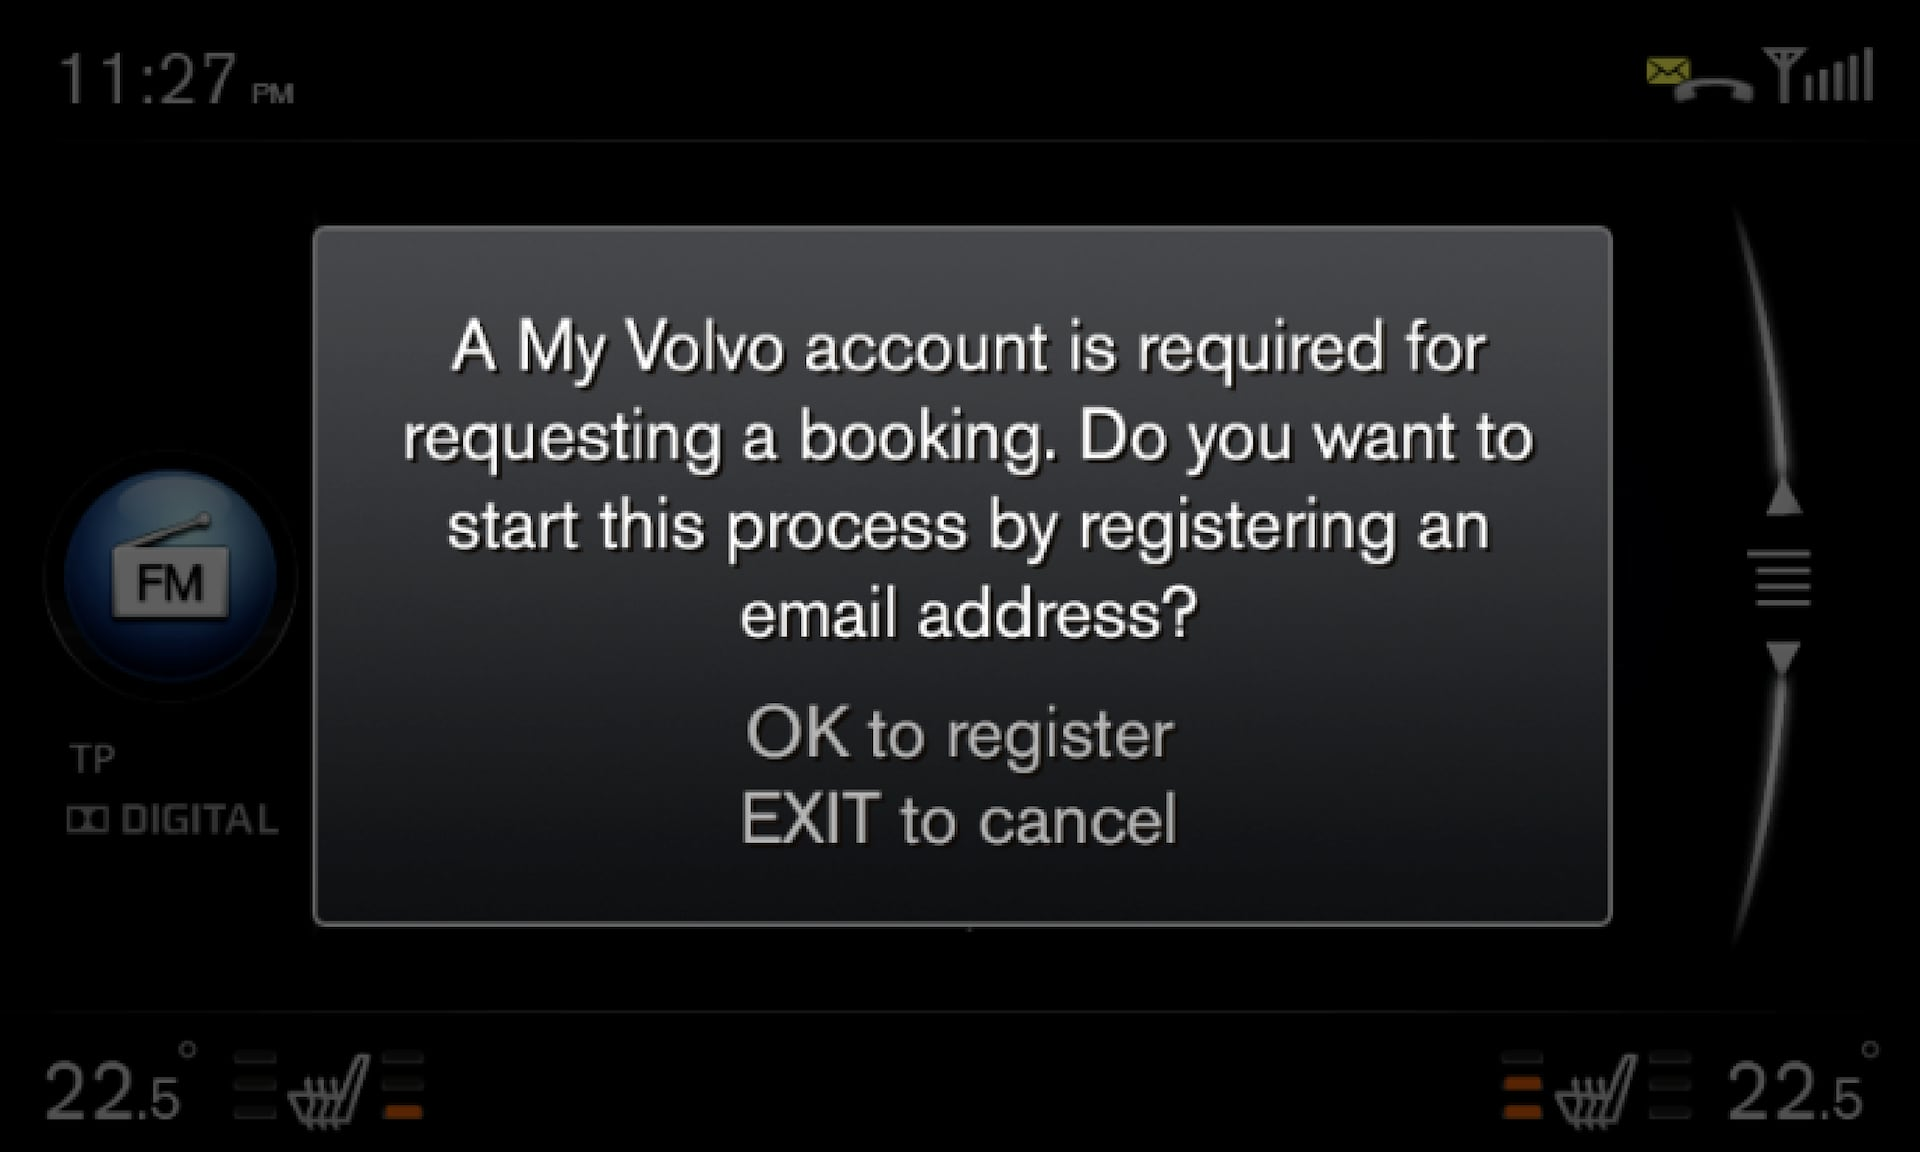 P3/P4 - Support site- Error message - Volvo account required